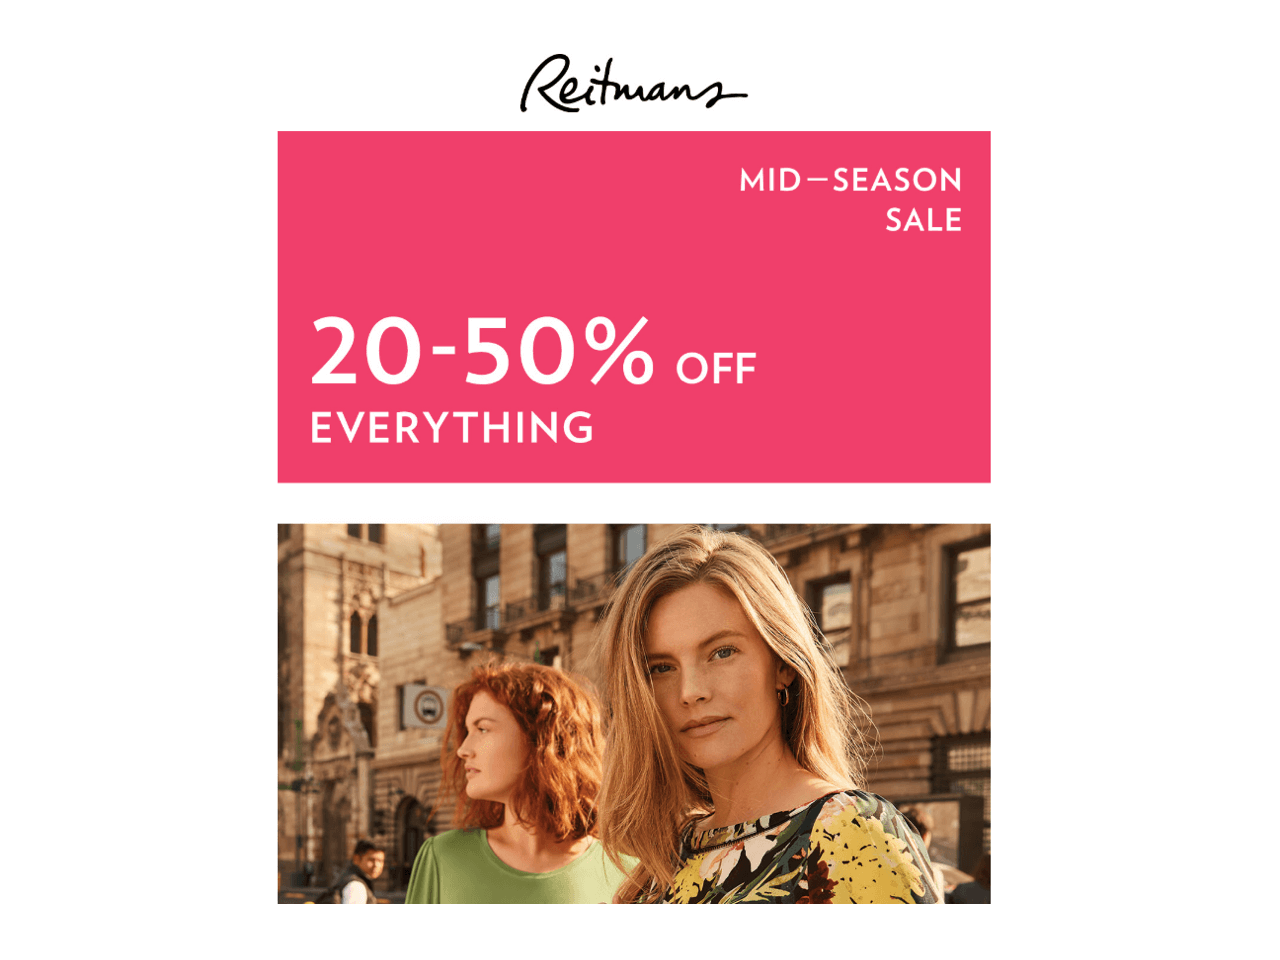 Reitman sends out mid-season sale newsletters to their subscribers